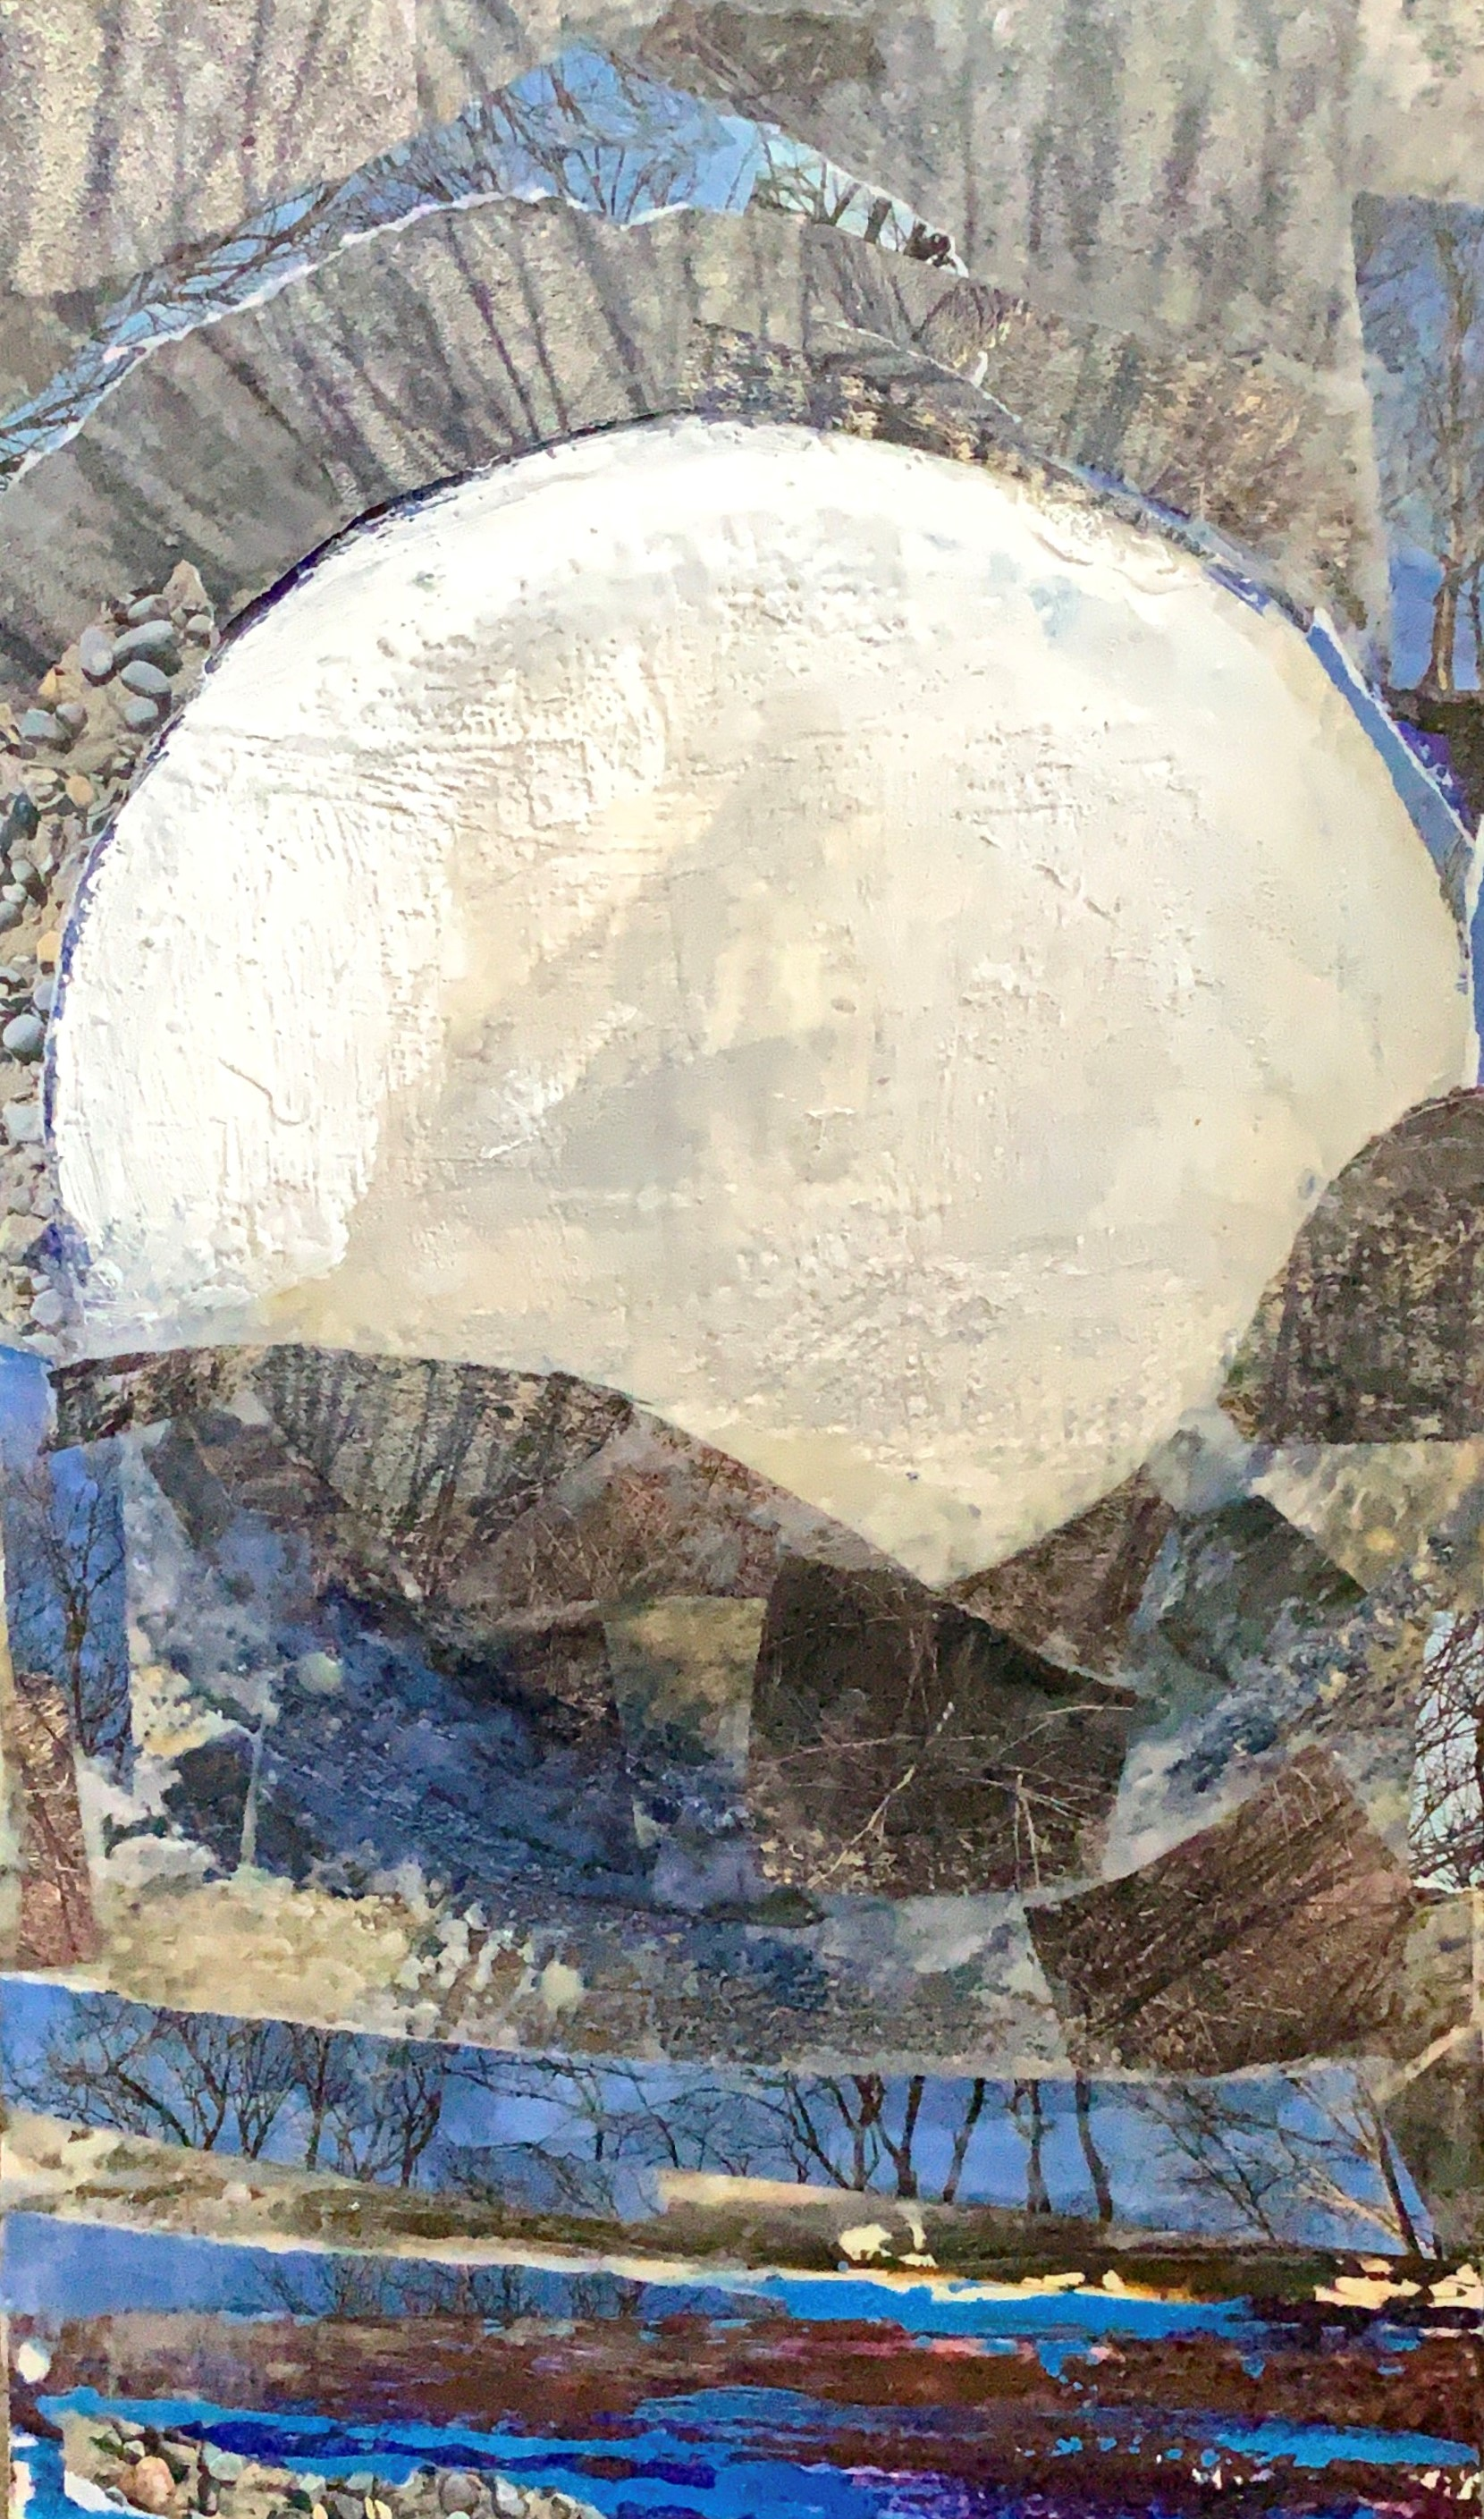 Williams_Super Moon 12 inches by 24 inches Encaustic with Mixed Media